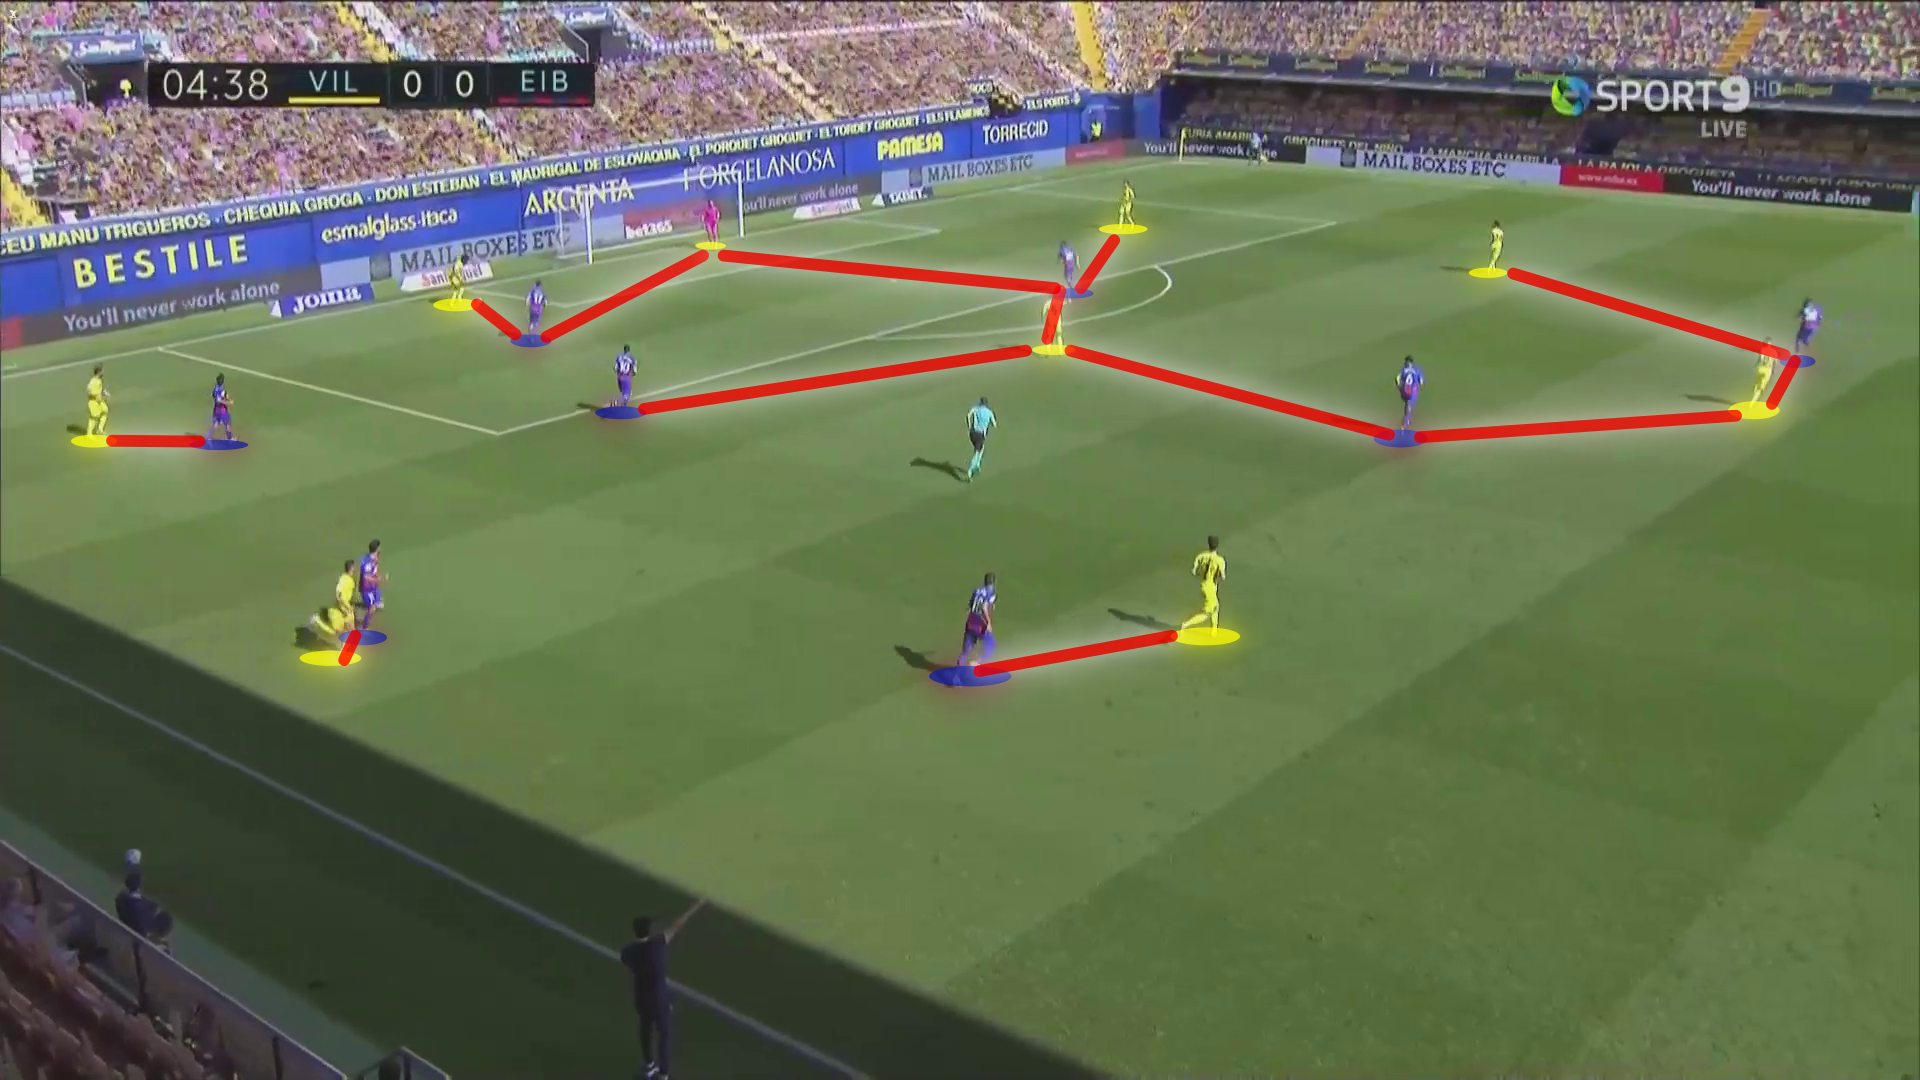 La Liga 2020/21: Villarreal vs Eibar - tactical analysis